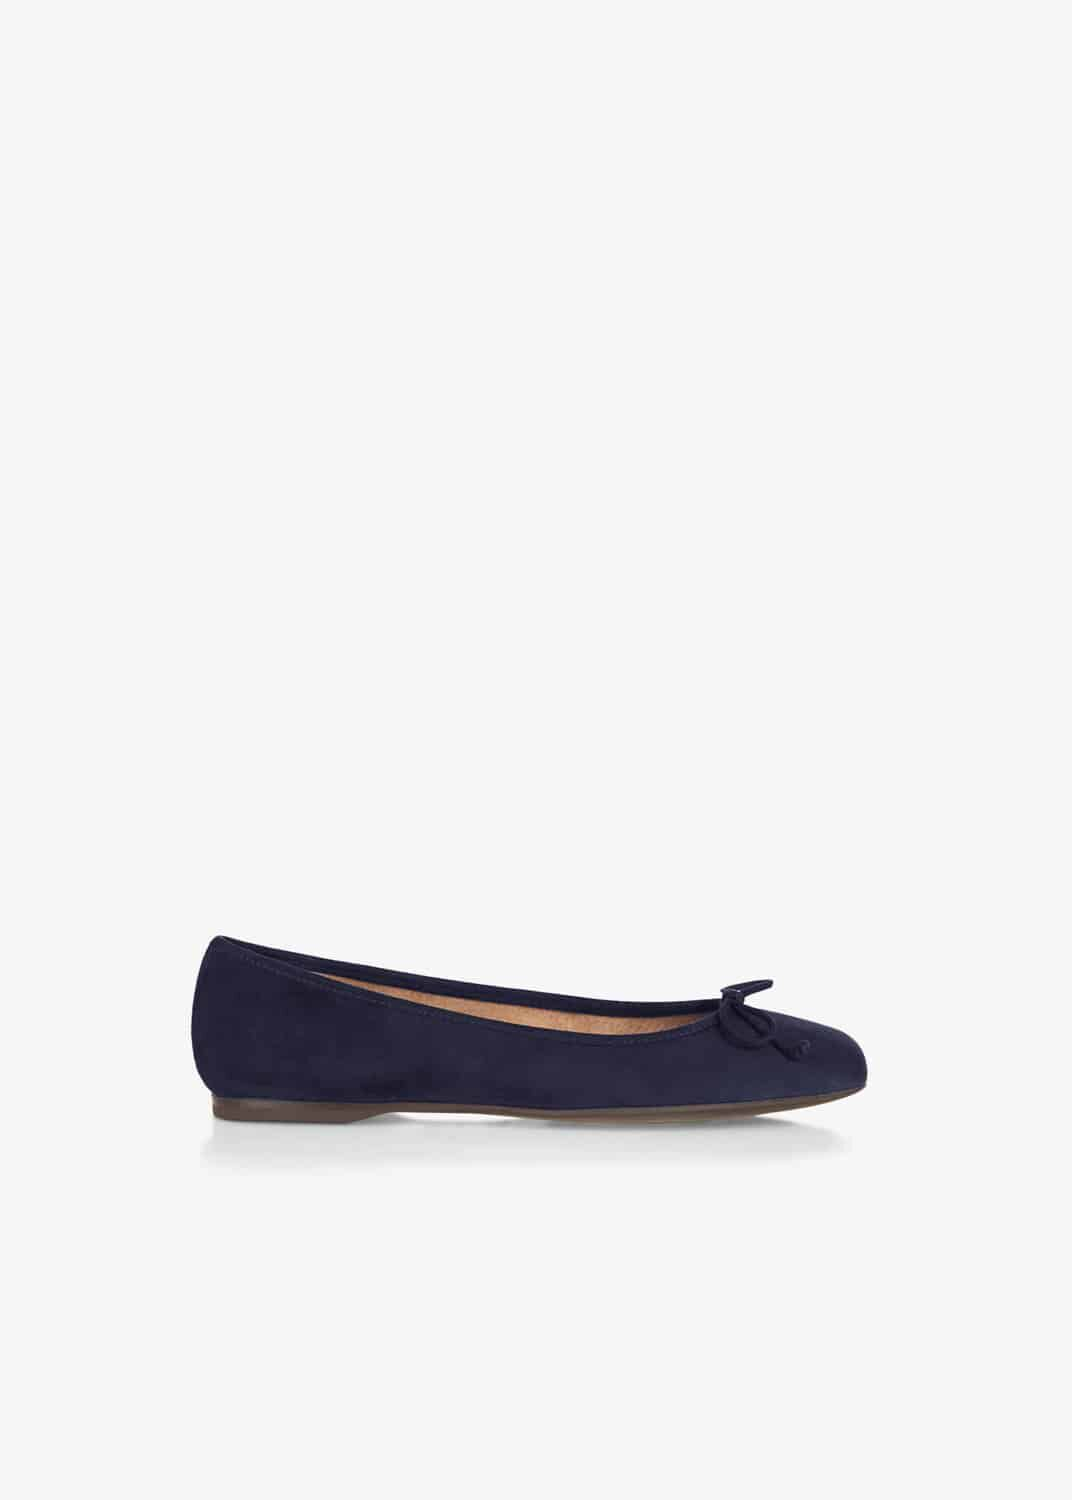 Hobbs Prior Suede Flat Shoes, Blue